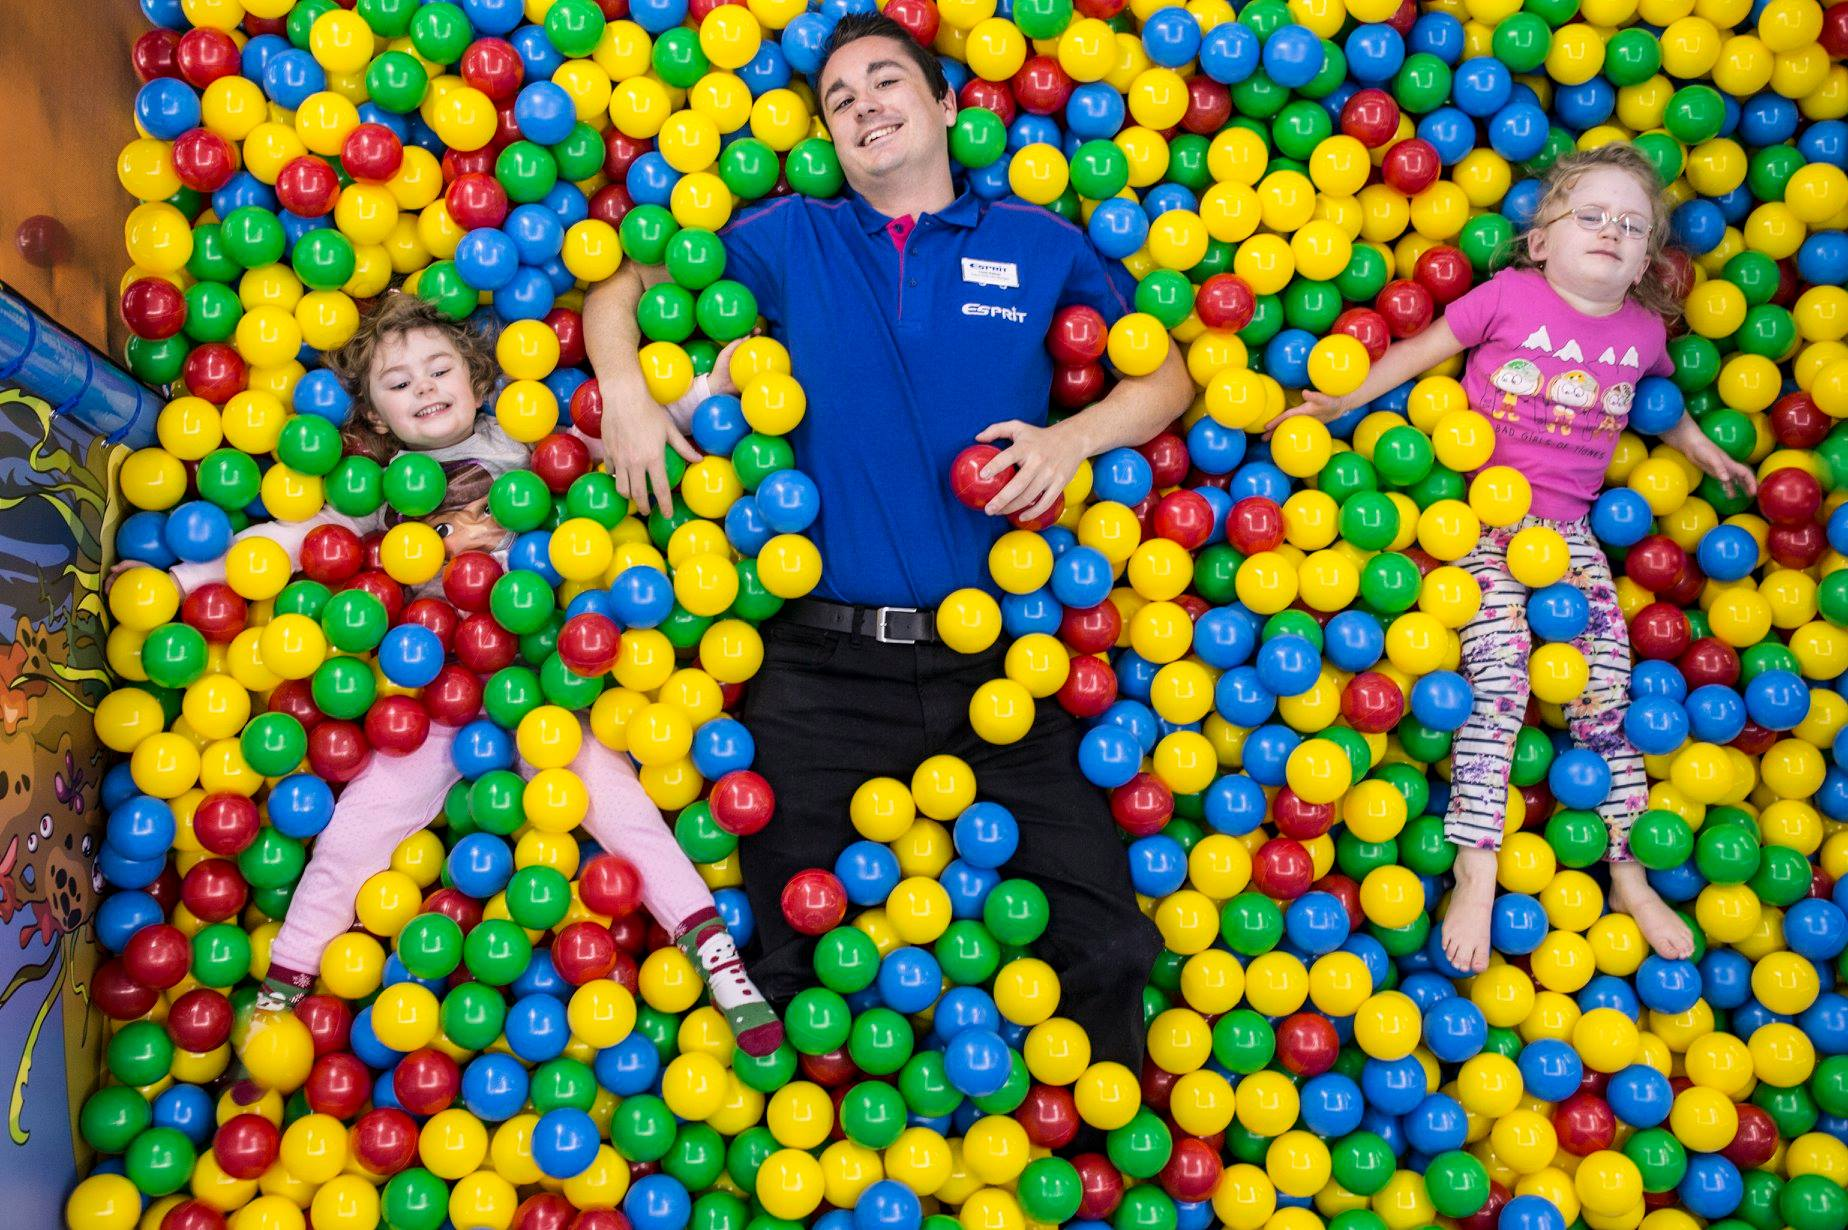 picture of esprit children's entertainer wearing a blue t-shirt and black trousers laid in a ball pool looking up to the camera along side two girls wearing pink also laid on their back in a multi coloured ball pit